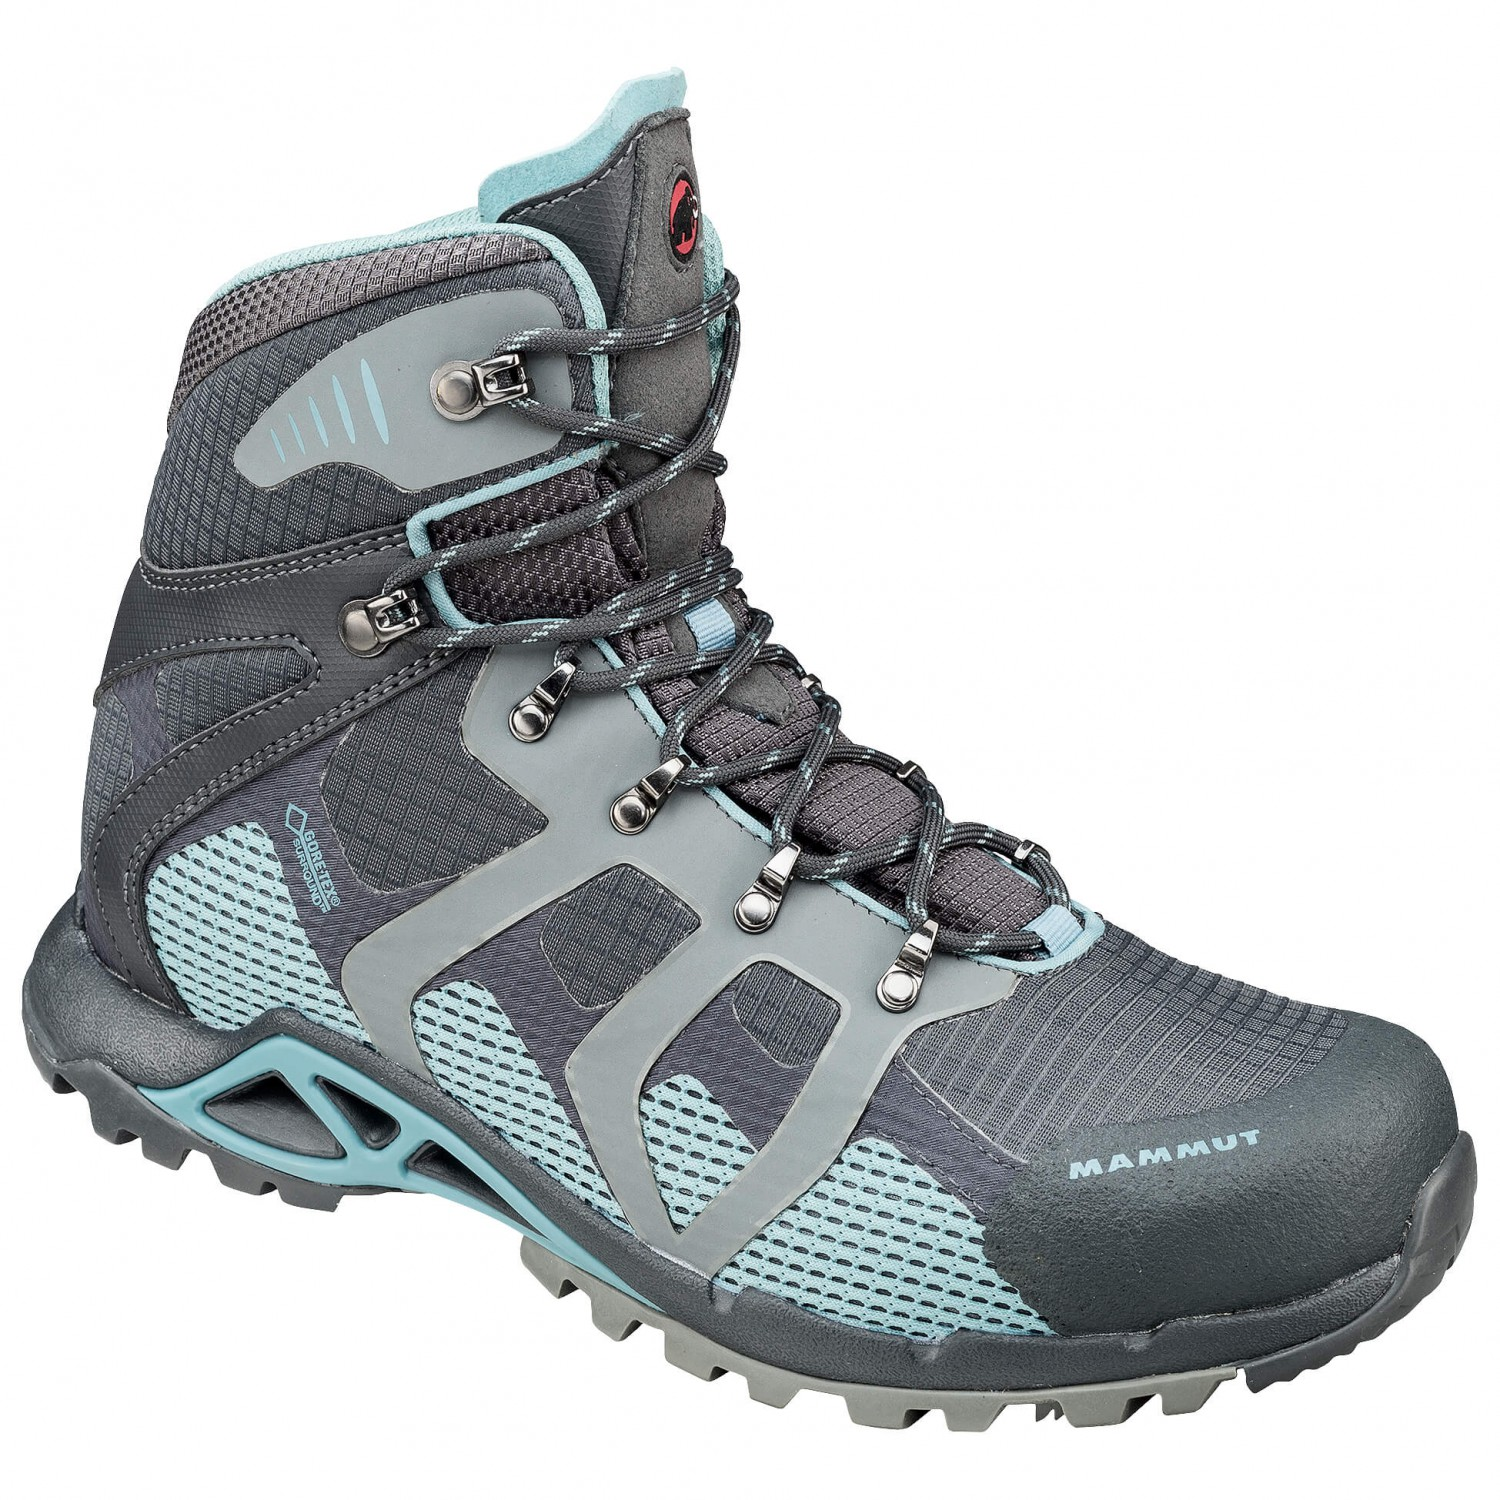 performance sportswear on feet images of reasonably priced Mammut Comfort High GTX Surround - Walking boots Women's | Buy ...